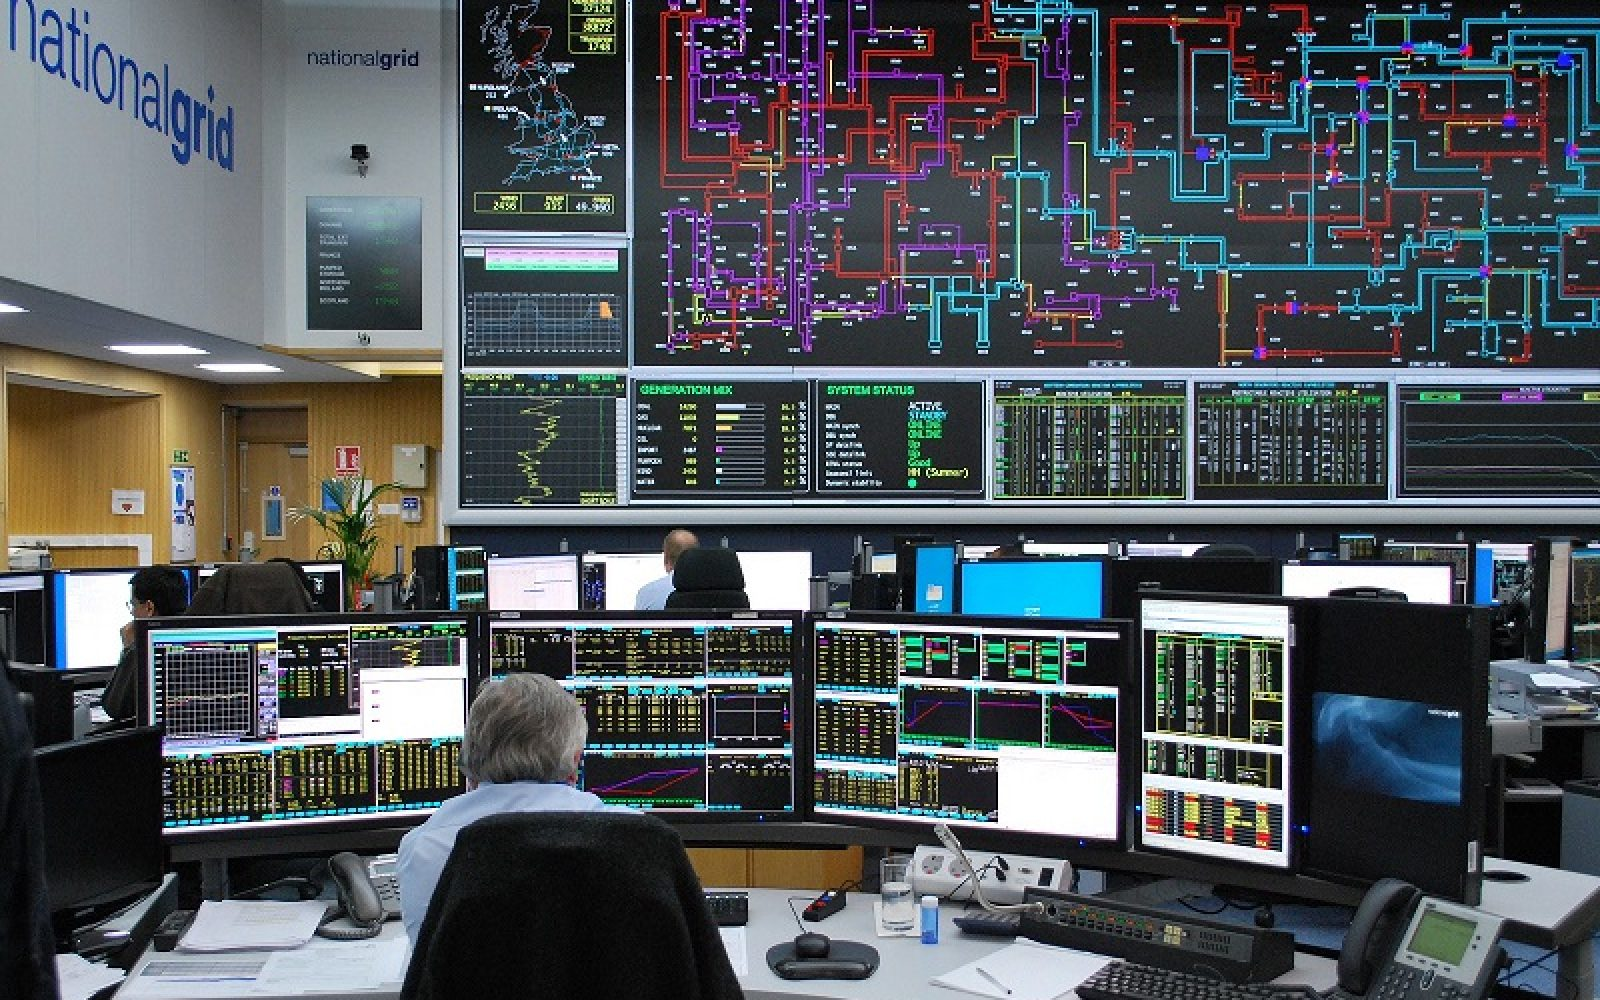 National Grid will use a web-based platform to access distributed energy resources following the first successful connection and testing of battery storage dispatch. Image: National Grid.